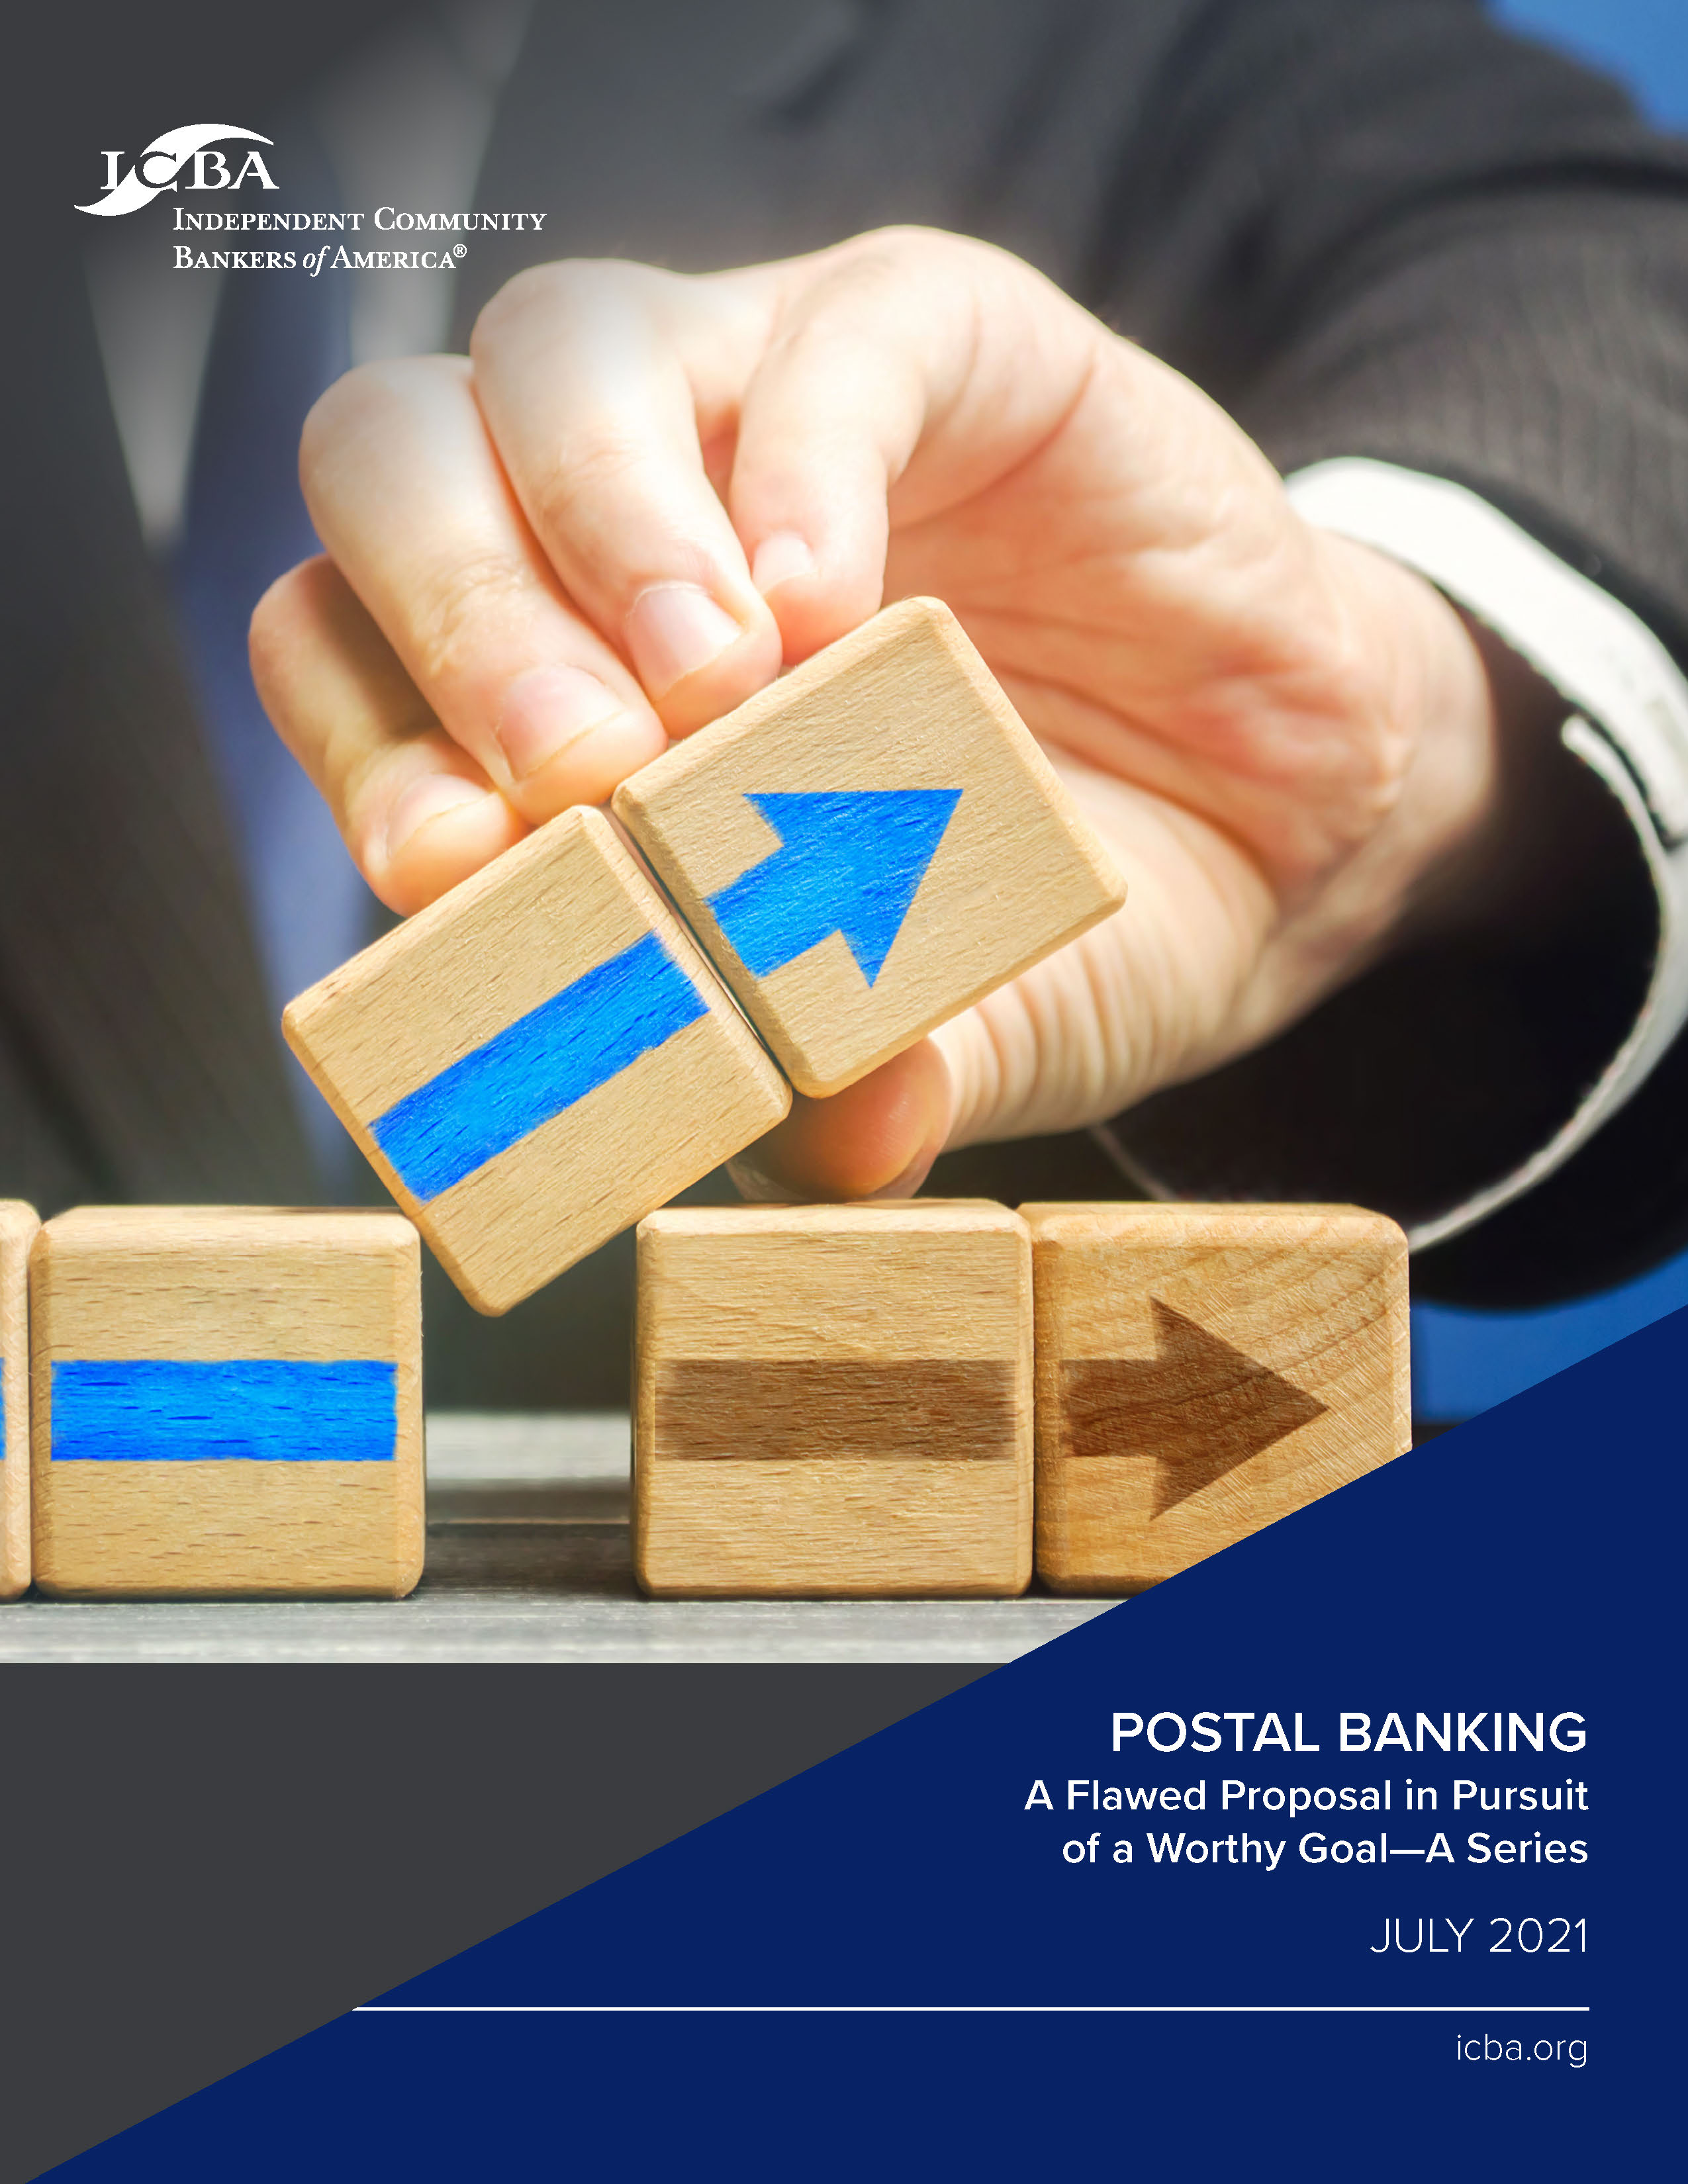 POSTAL BANKING A Flawed Proposal in Pursuit of a Worthy Goal—A Series